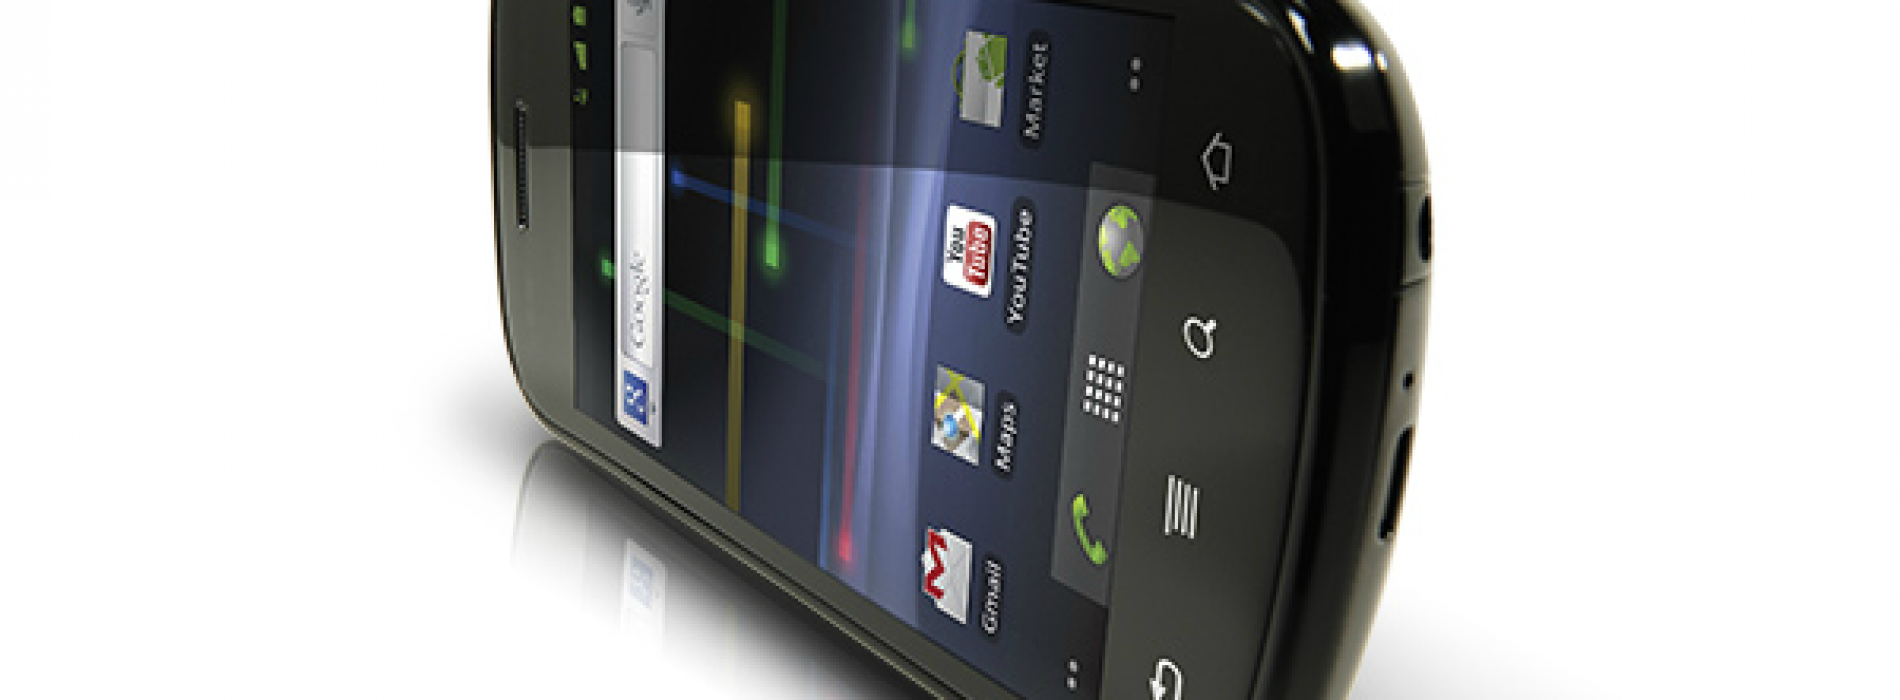 Sprint: Android 4.0 arrives for Nexus S 4G